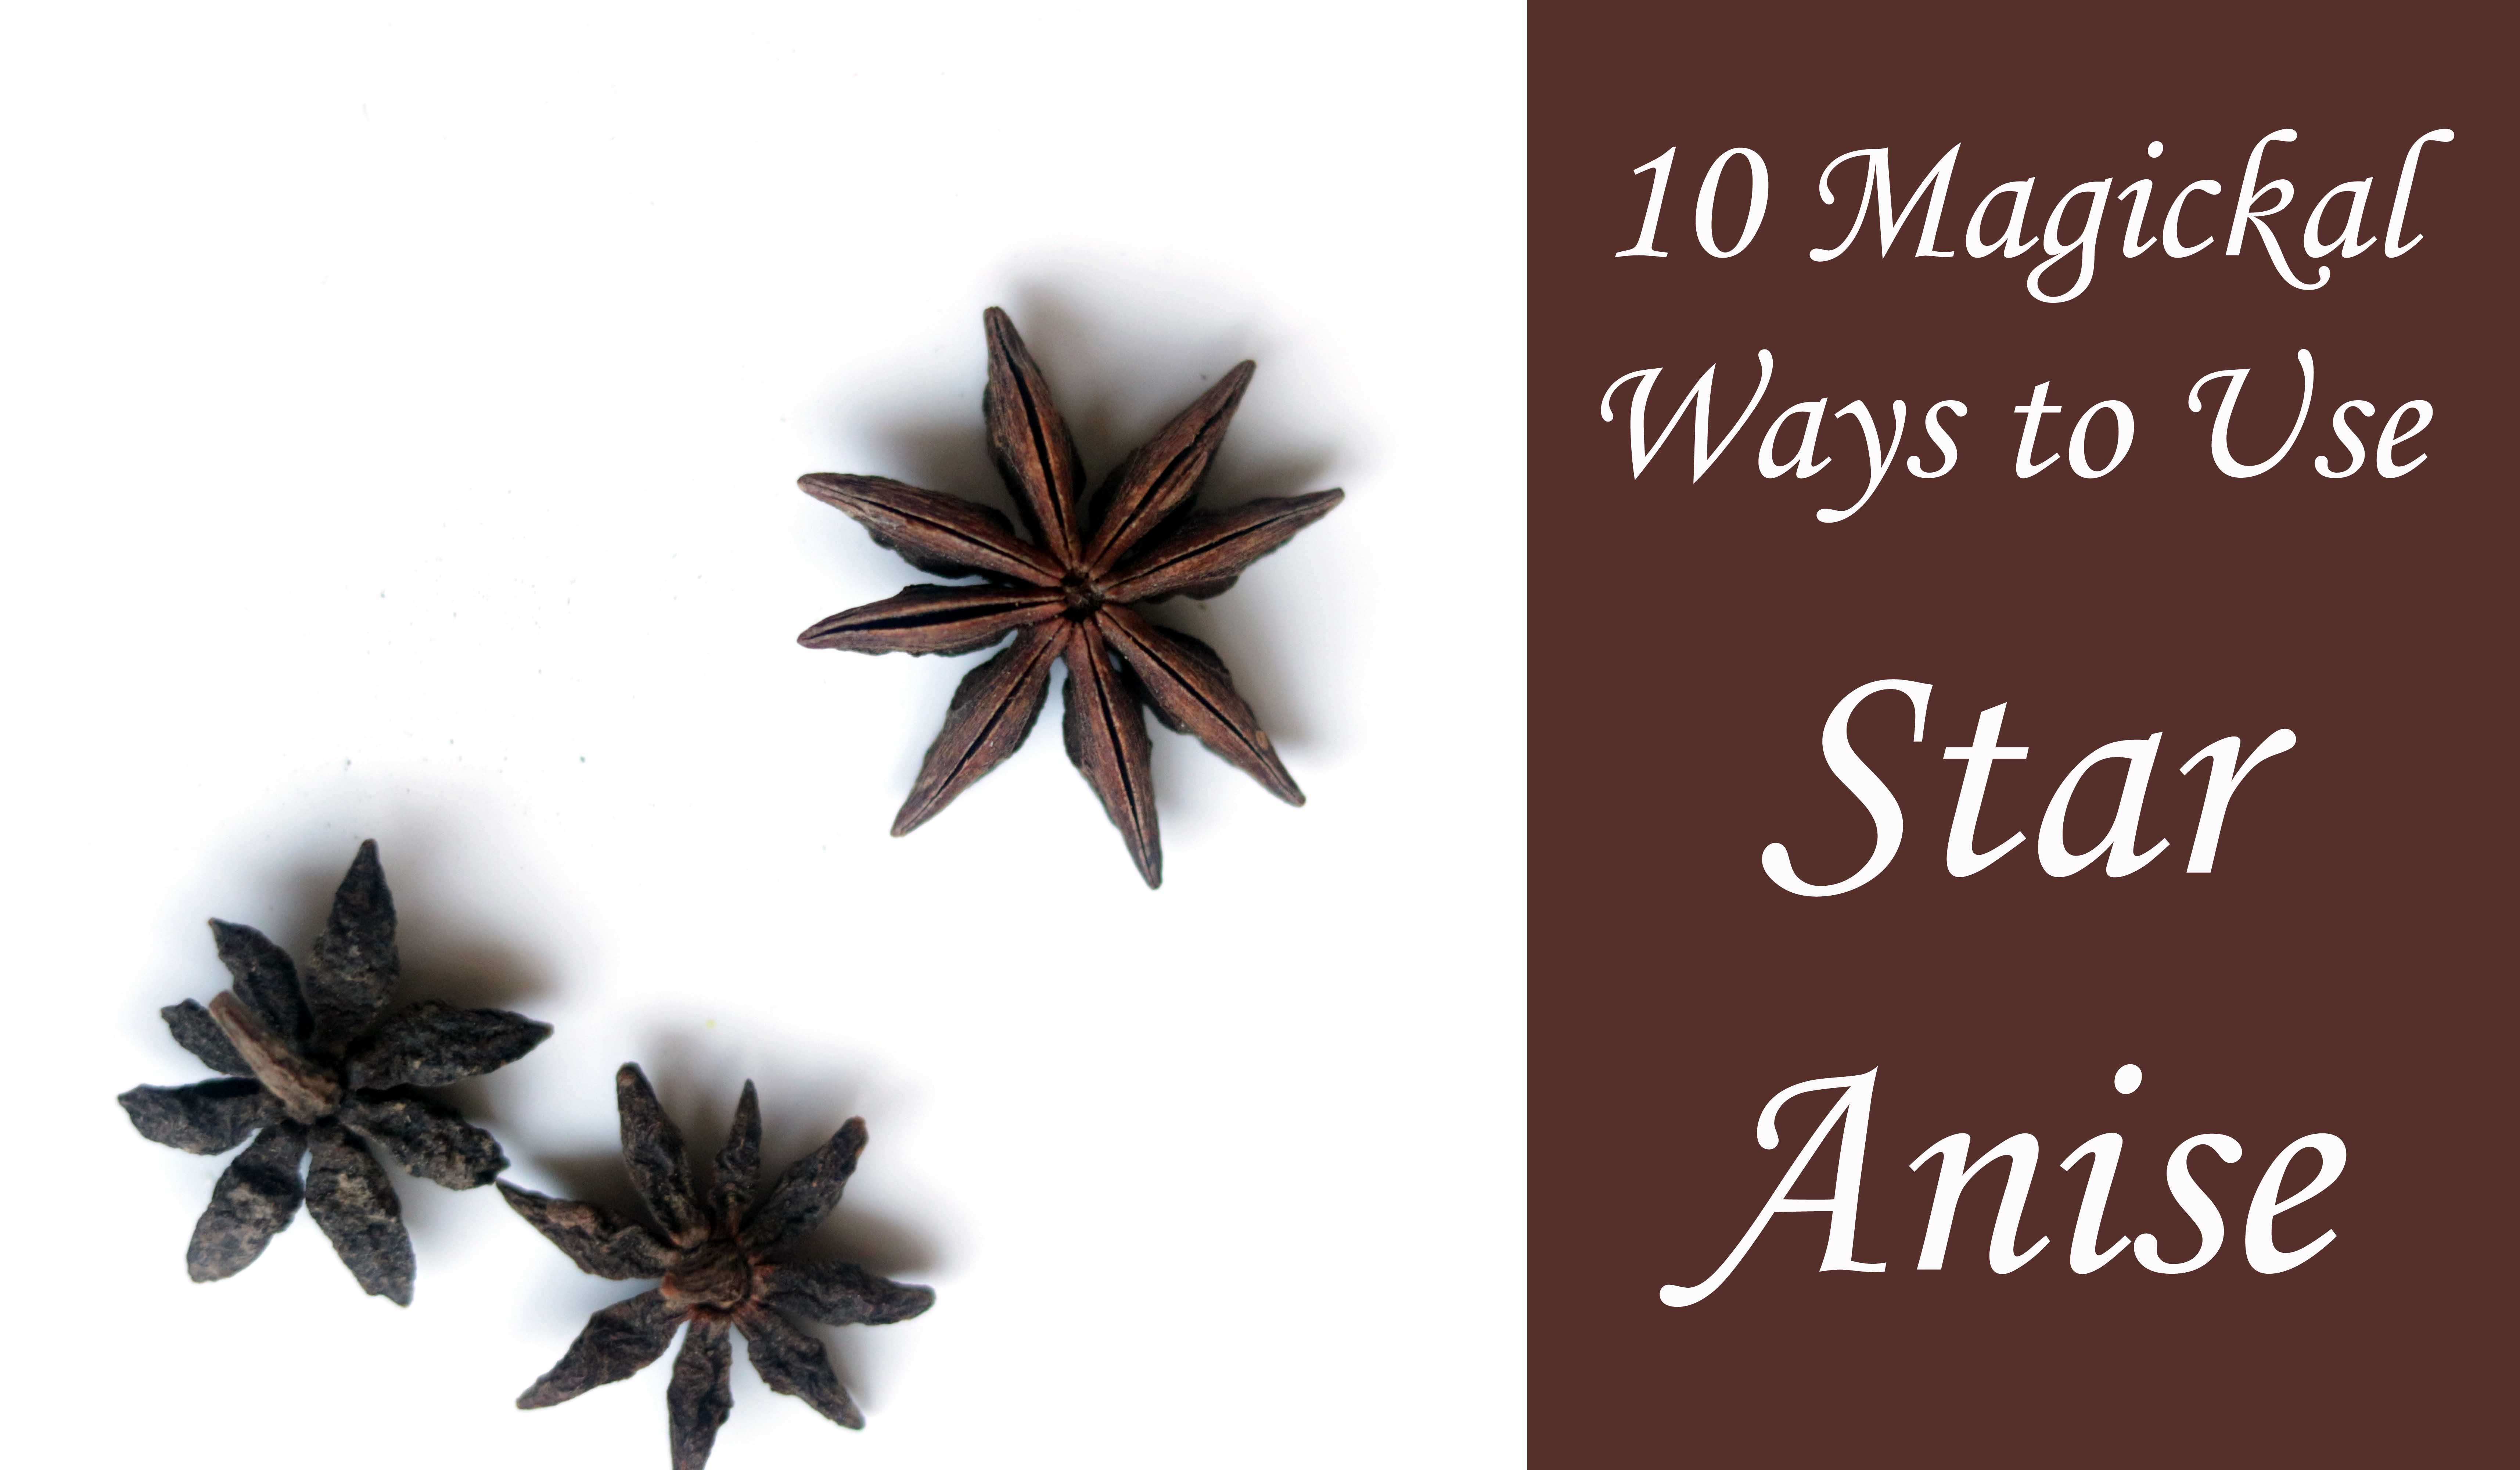 10 Magickal Ways to Use Star Anise in Witchcraft